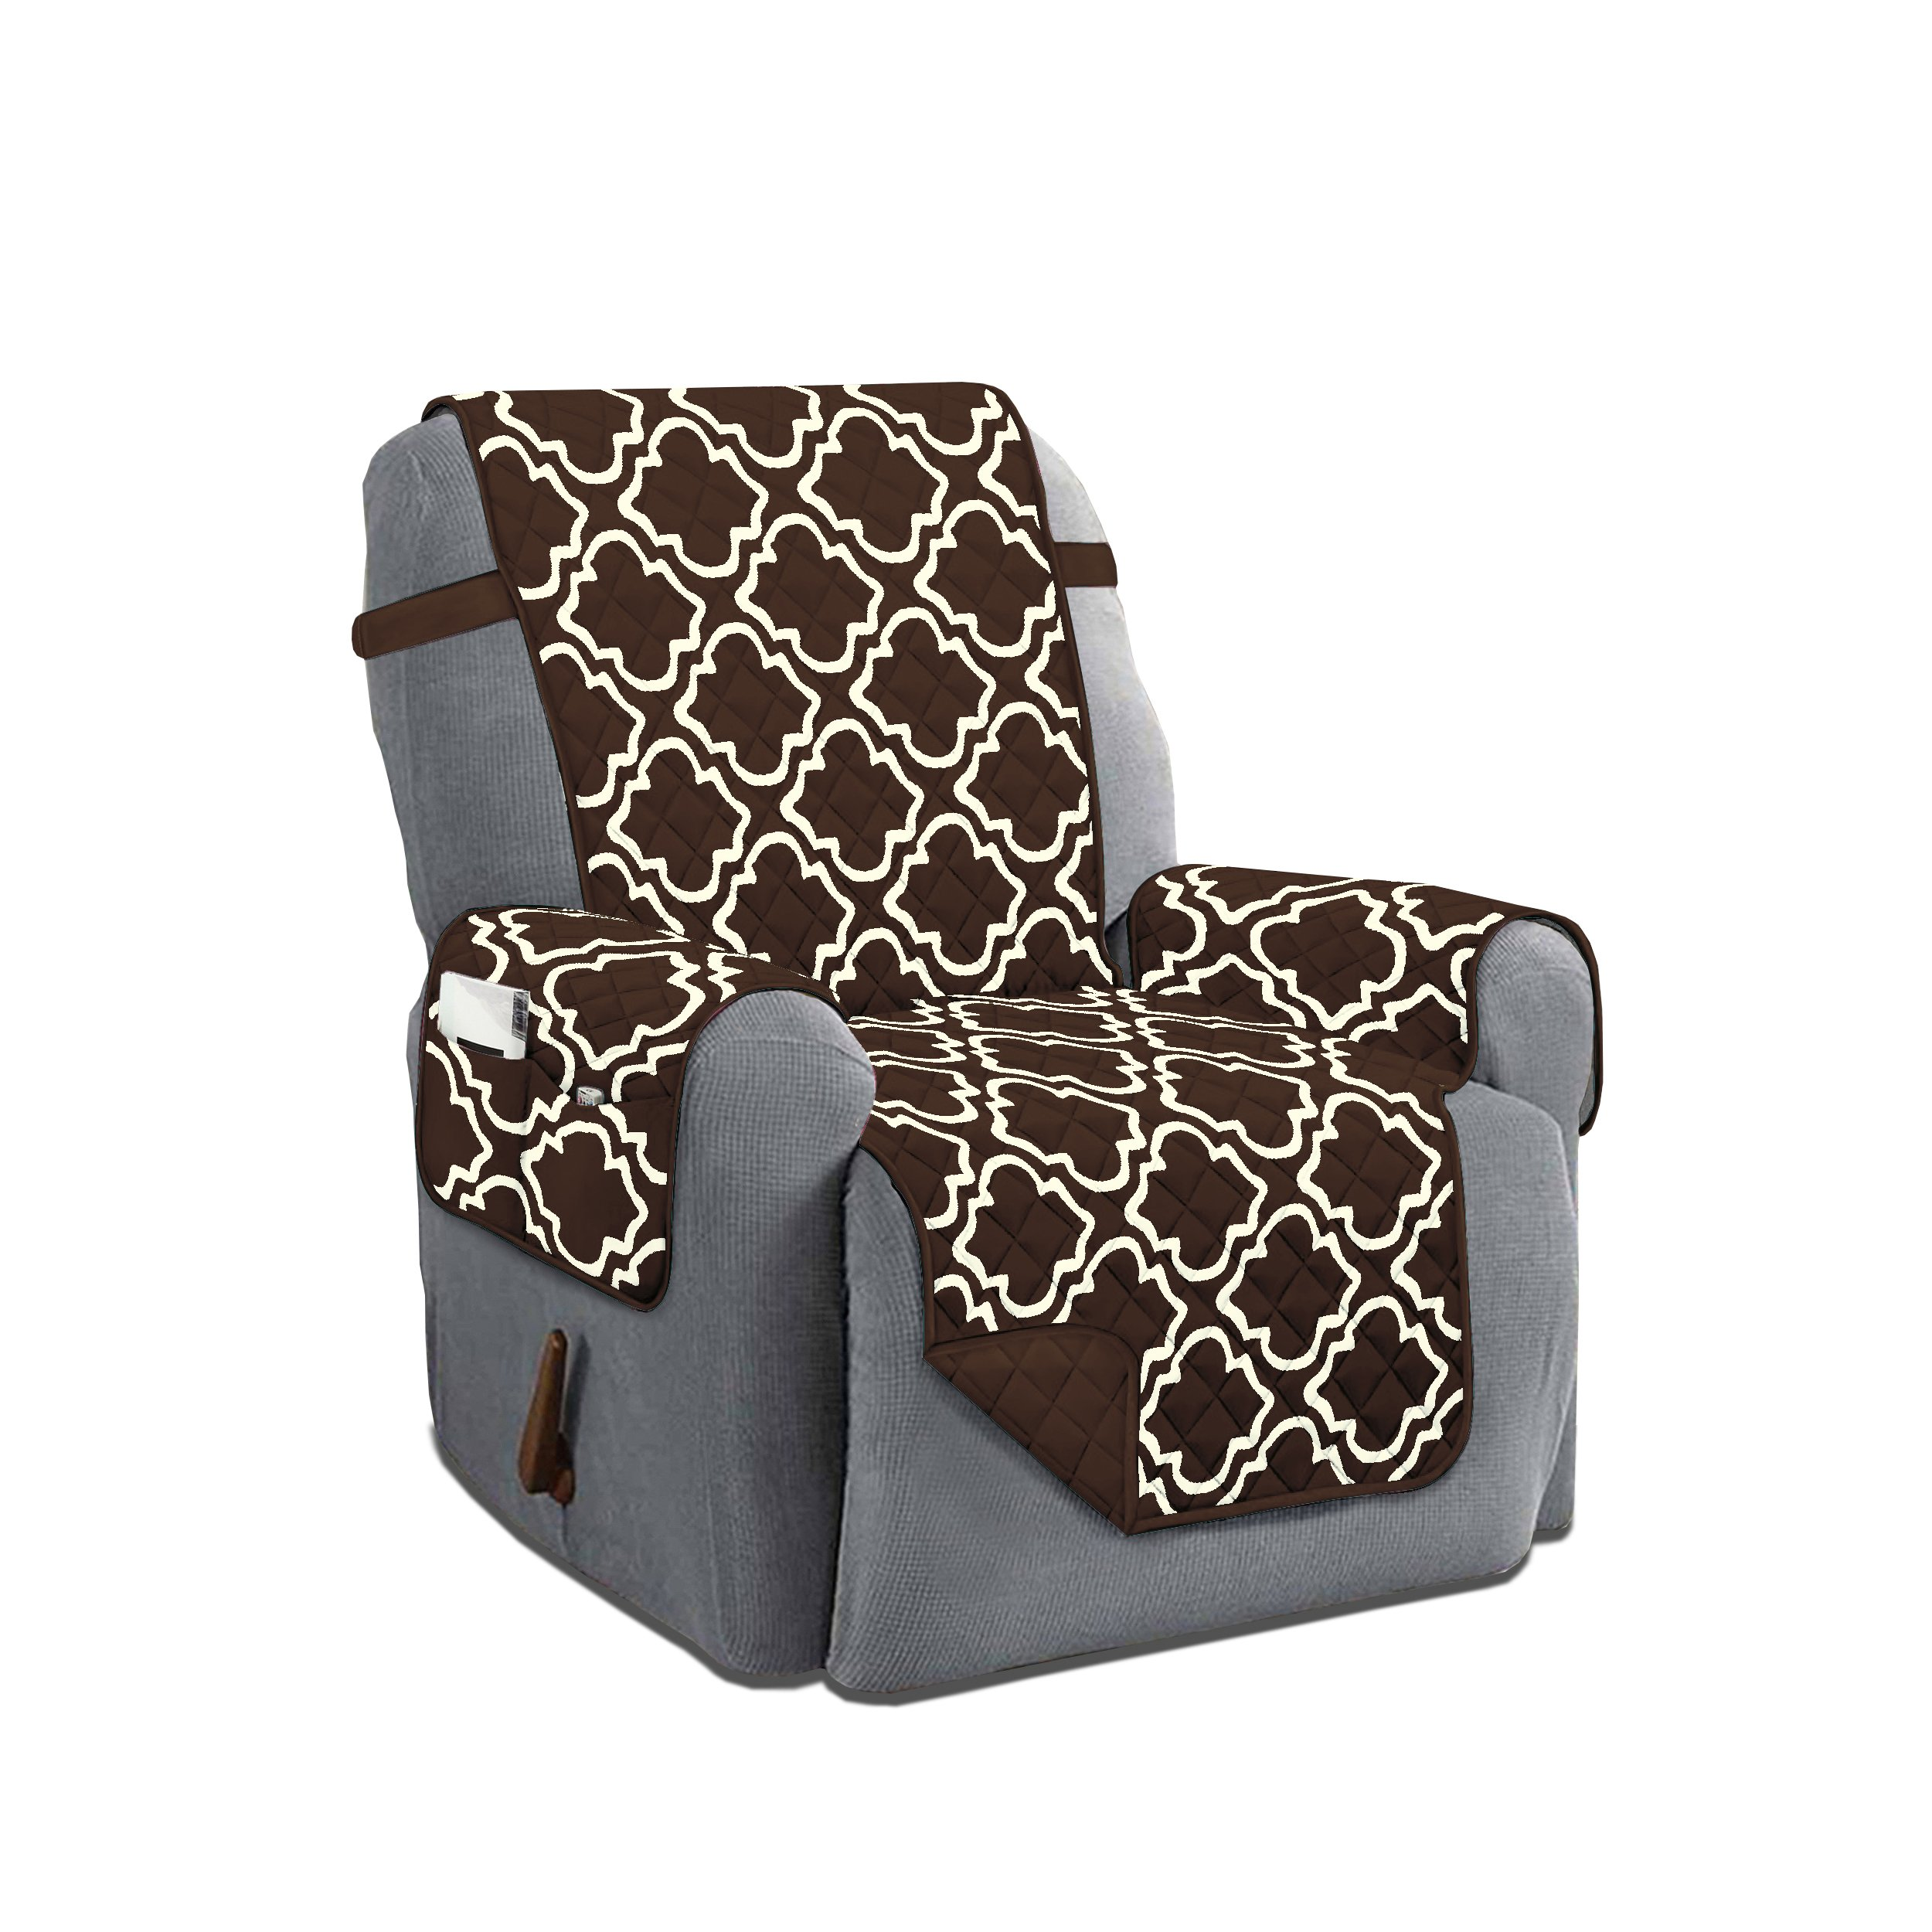 Austin Reversible Solid/Print Microfiber Furniture Protector With Strap & Side Pockets (Recliner, Chocolate) by Linen Store